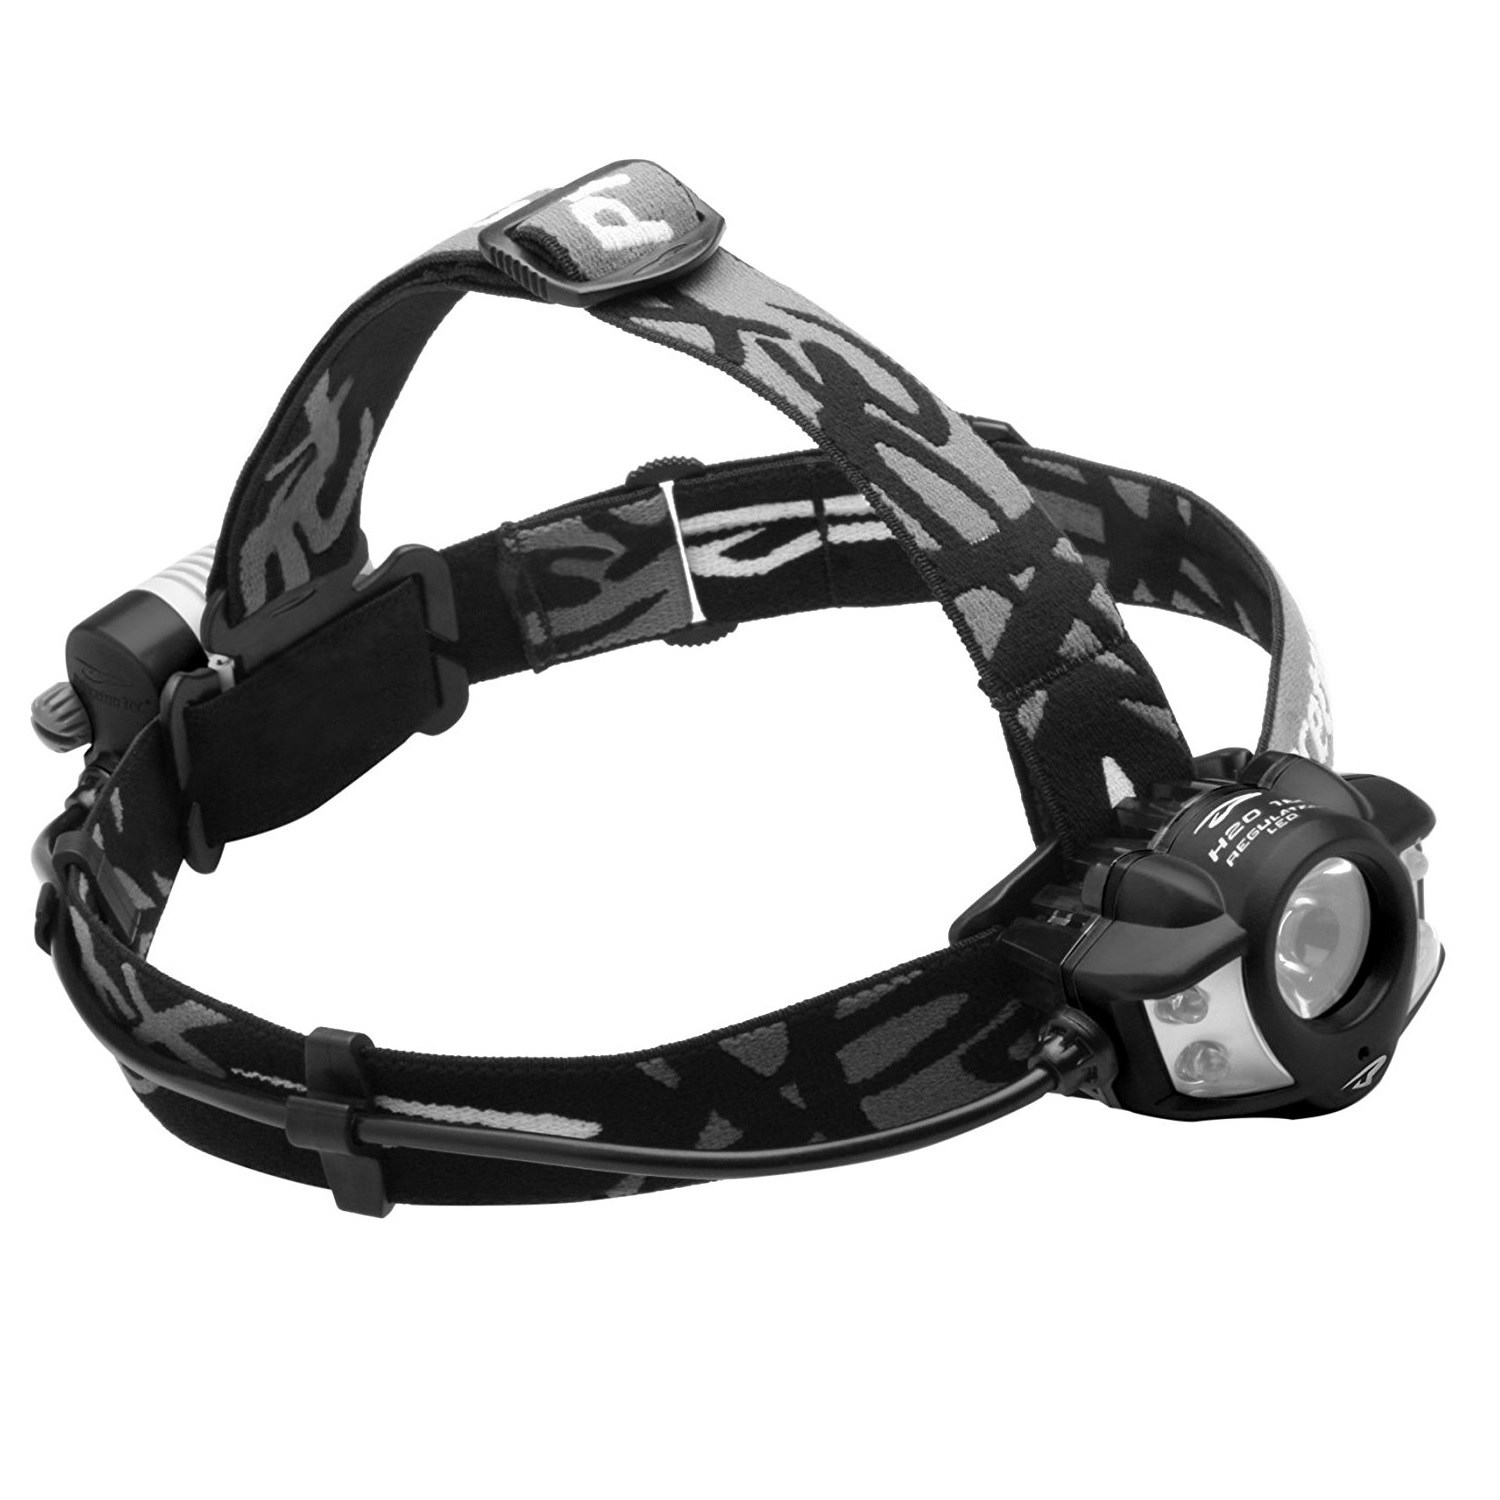 Princeton Tec 260 Lumen Apex Pro Headlamp, Black